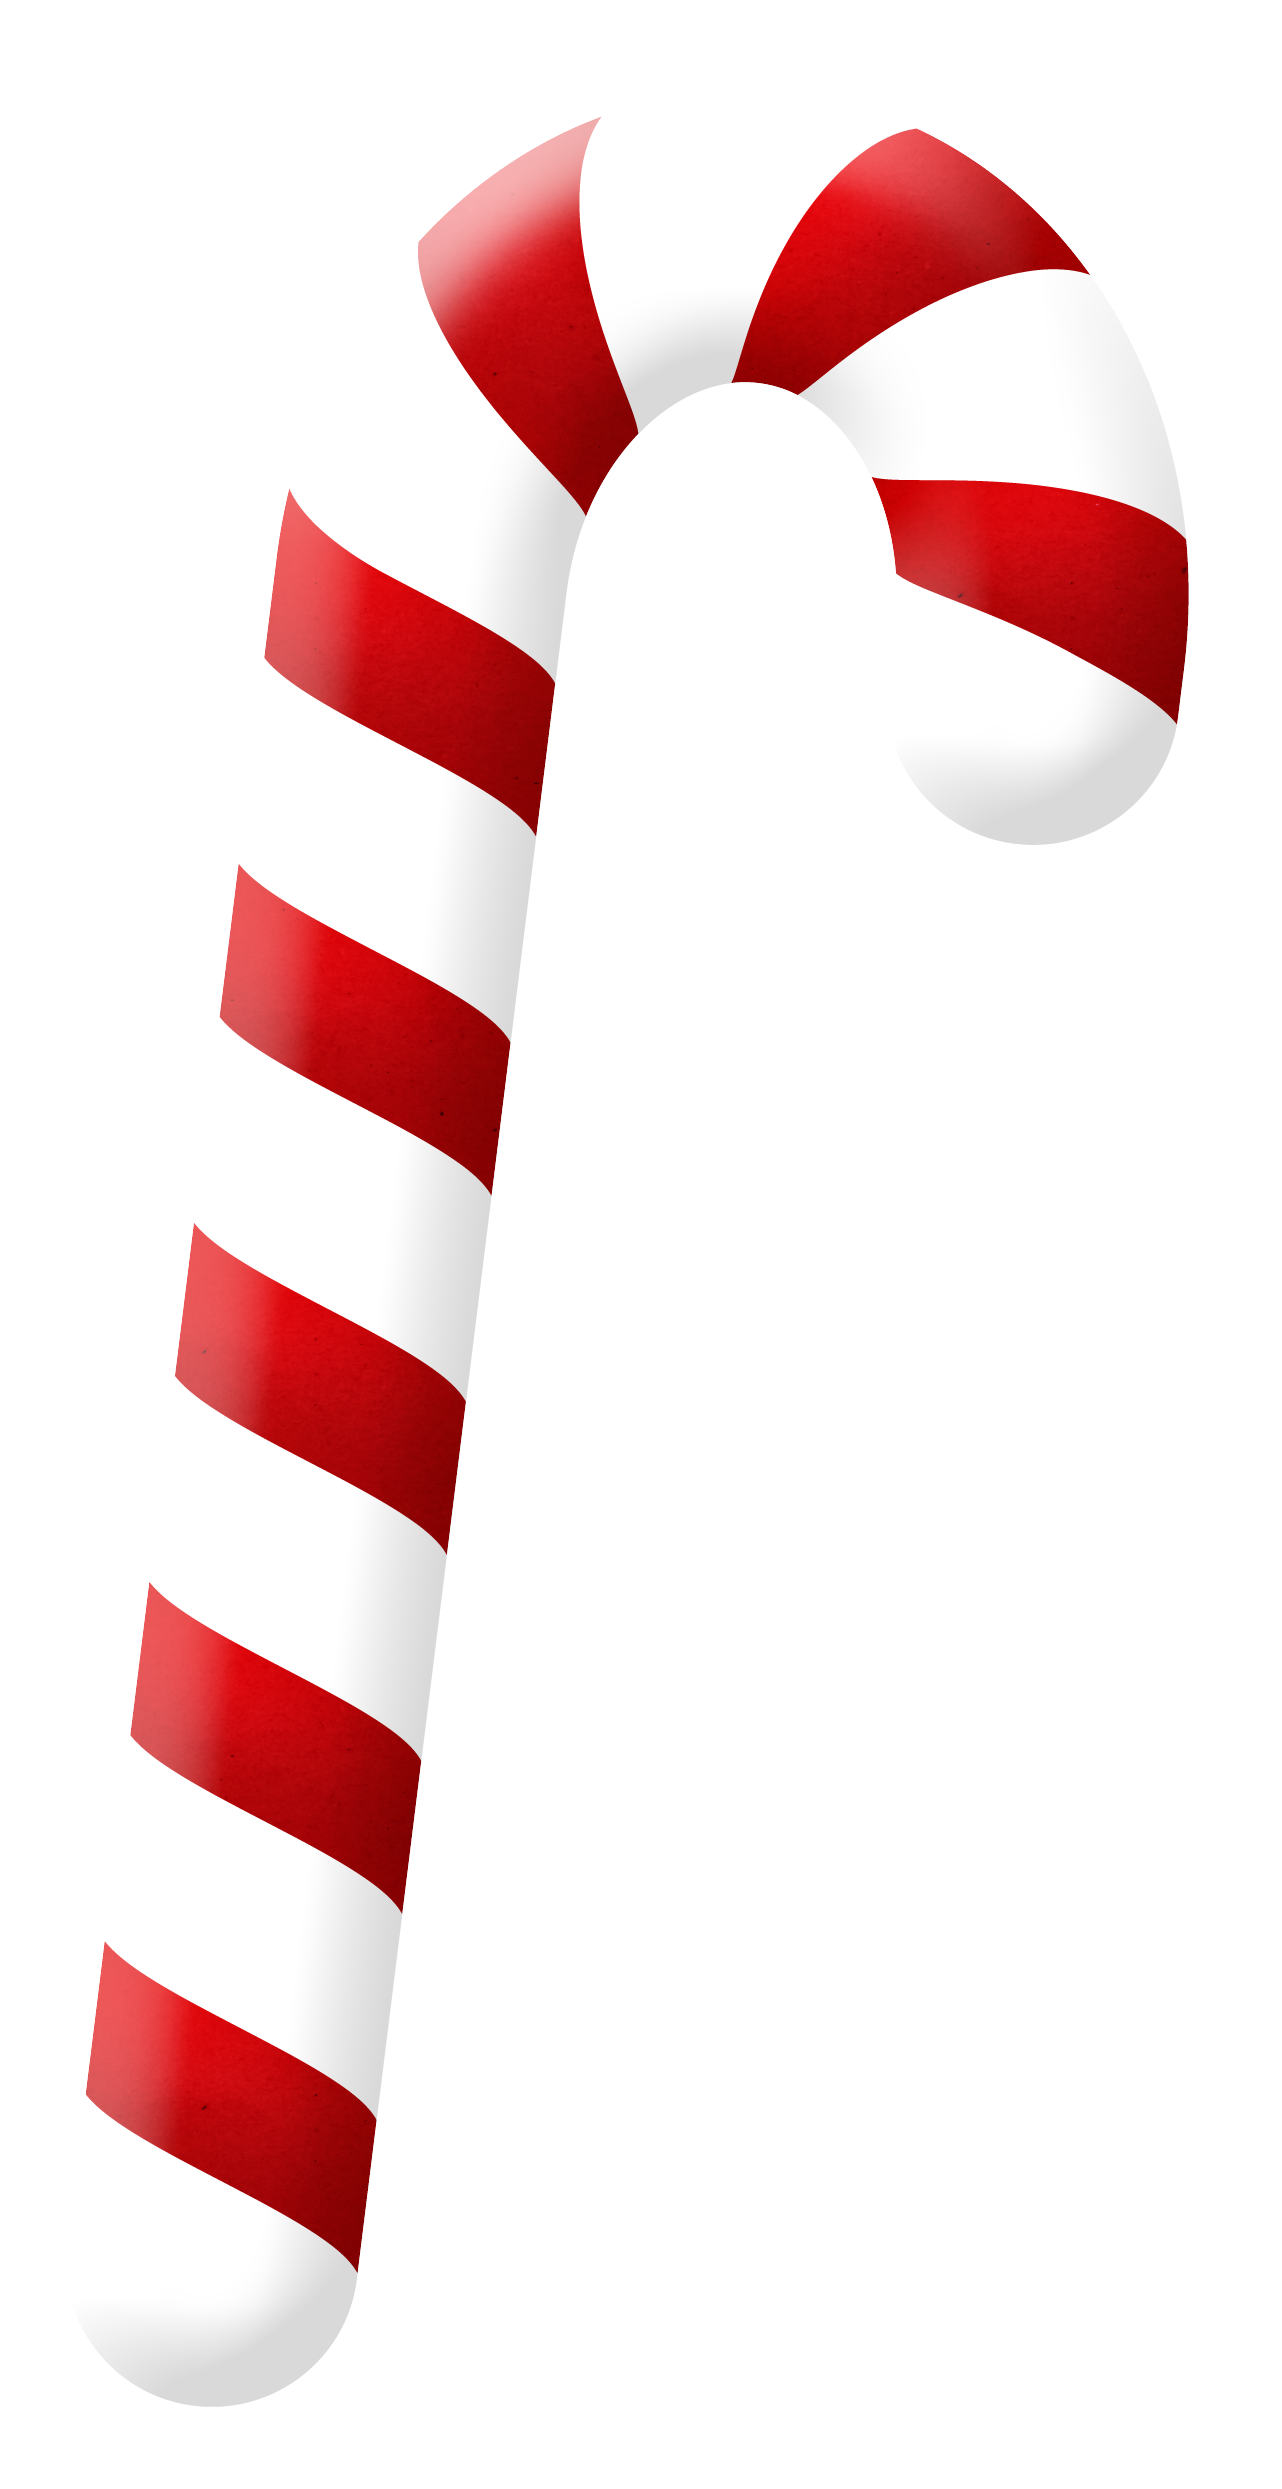 Candy cane pole clipart banner download CHRISTMAS CANDY CANE CLIP ART | CLIP ART - CHRISTMAS 1 - CLIPART ... banner download